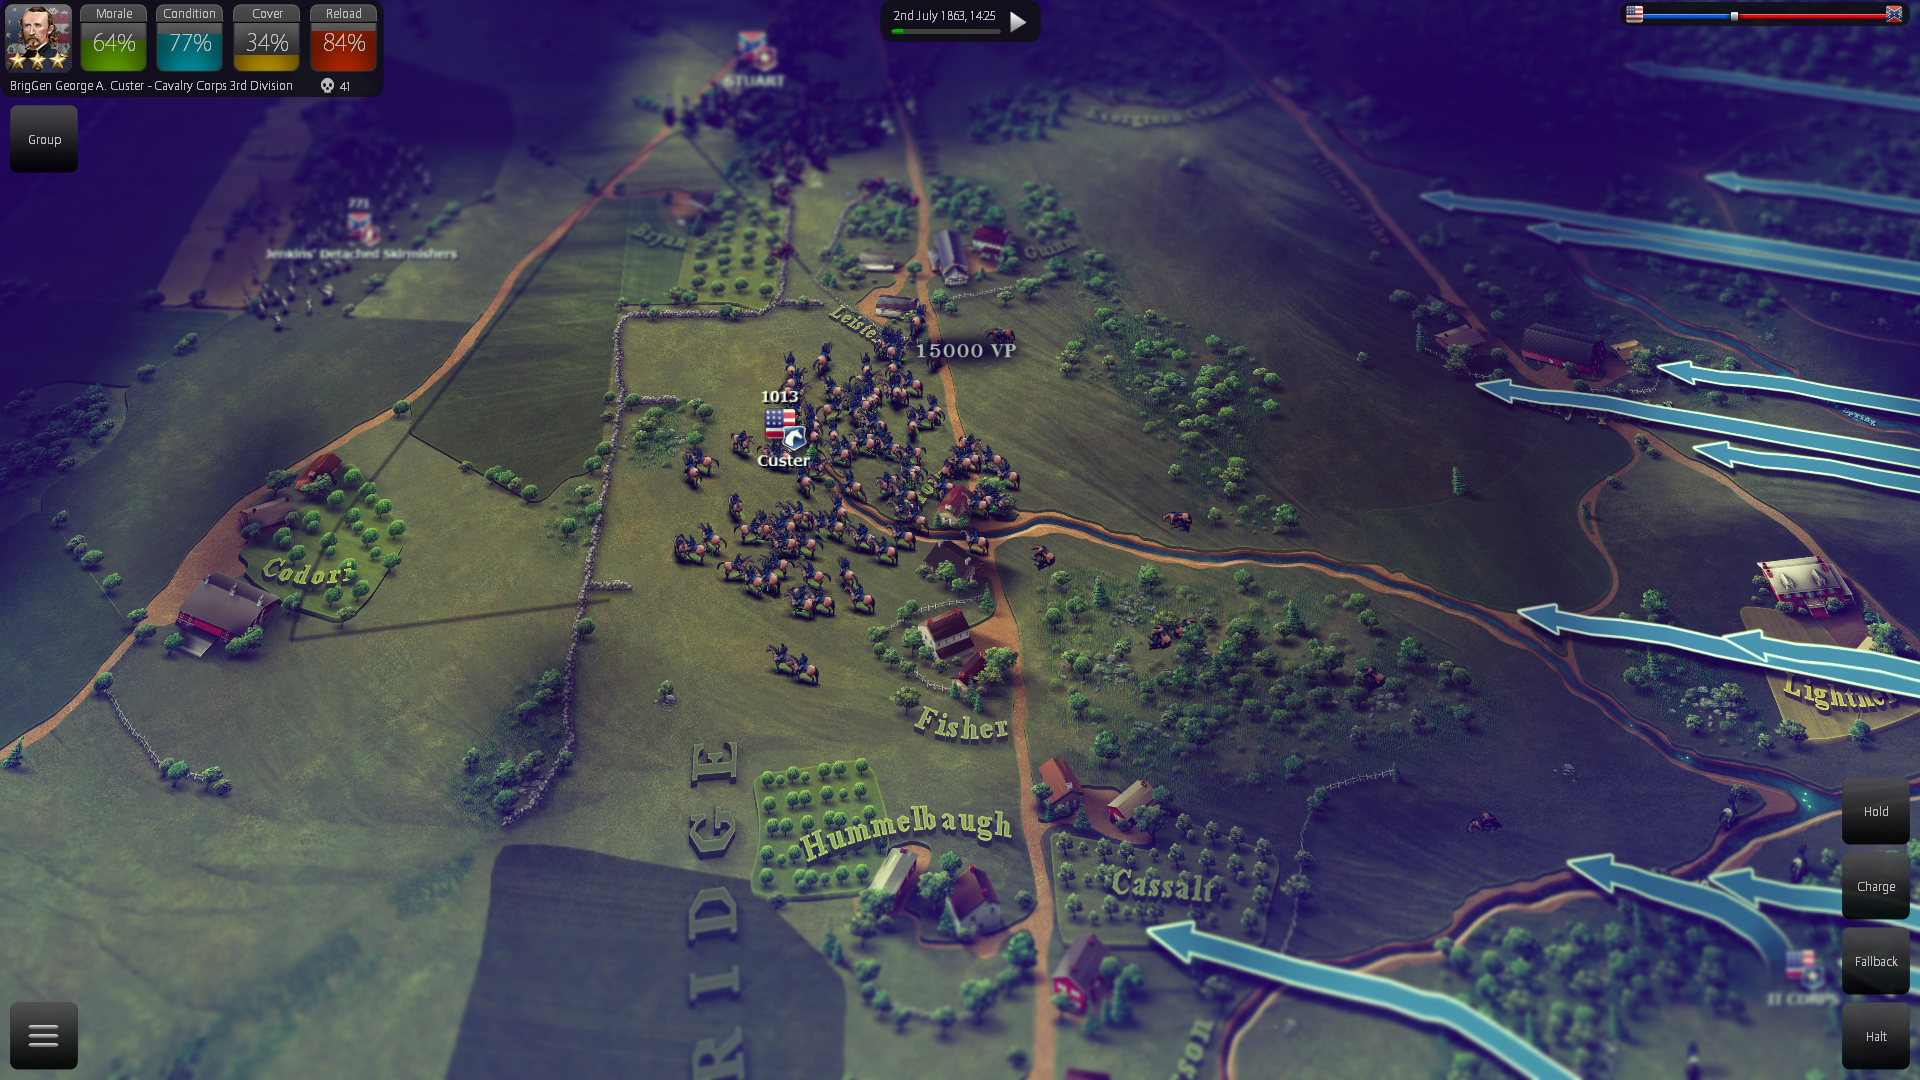 """Custer scouting the area ahead of the Union army in the new multiplayer battle """"Meeting at Cemetery ridge""""."""